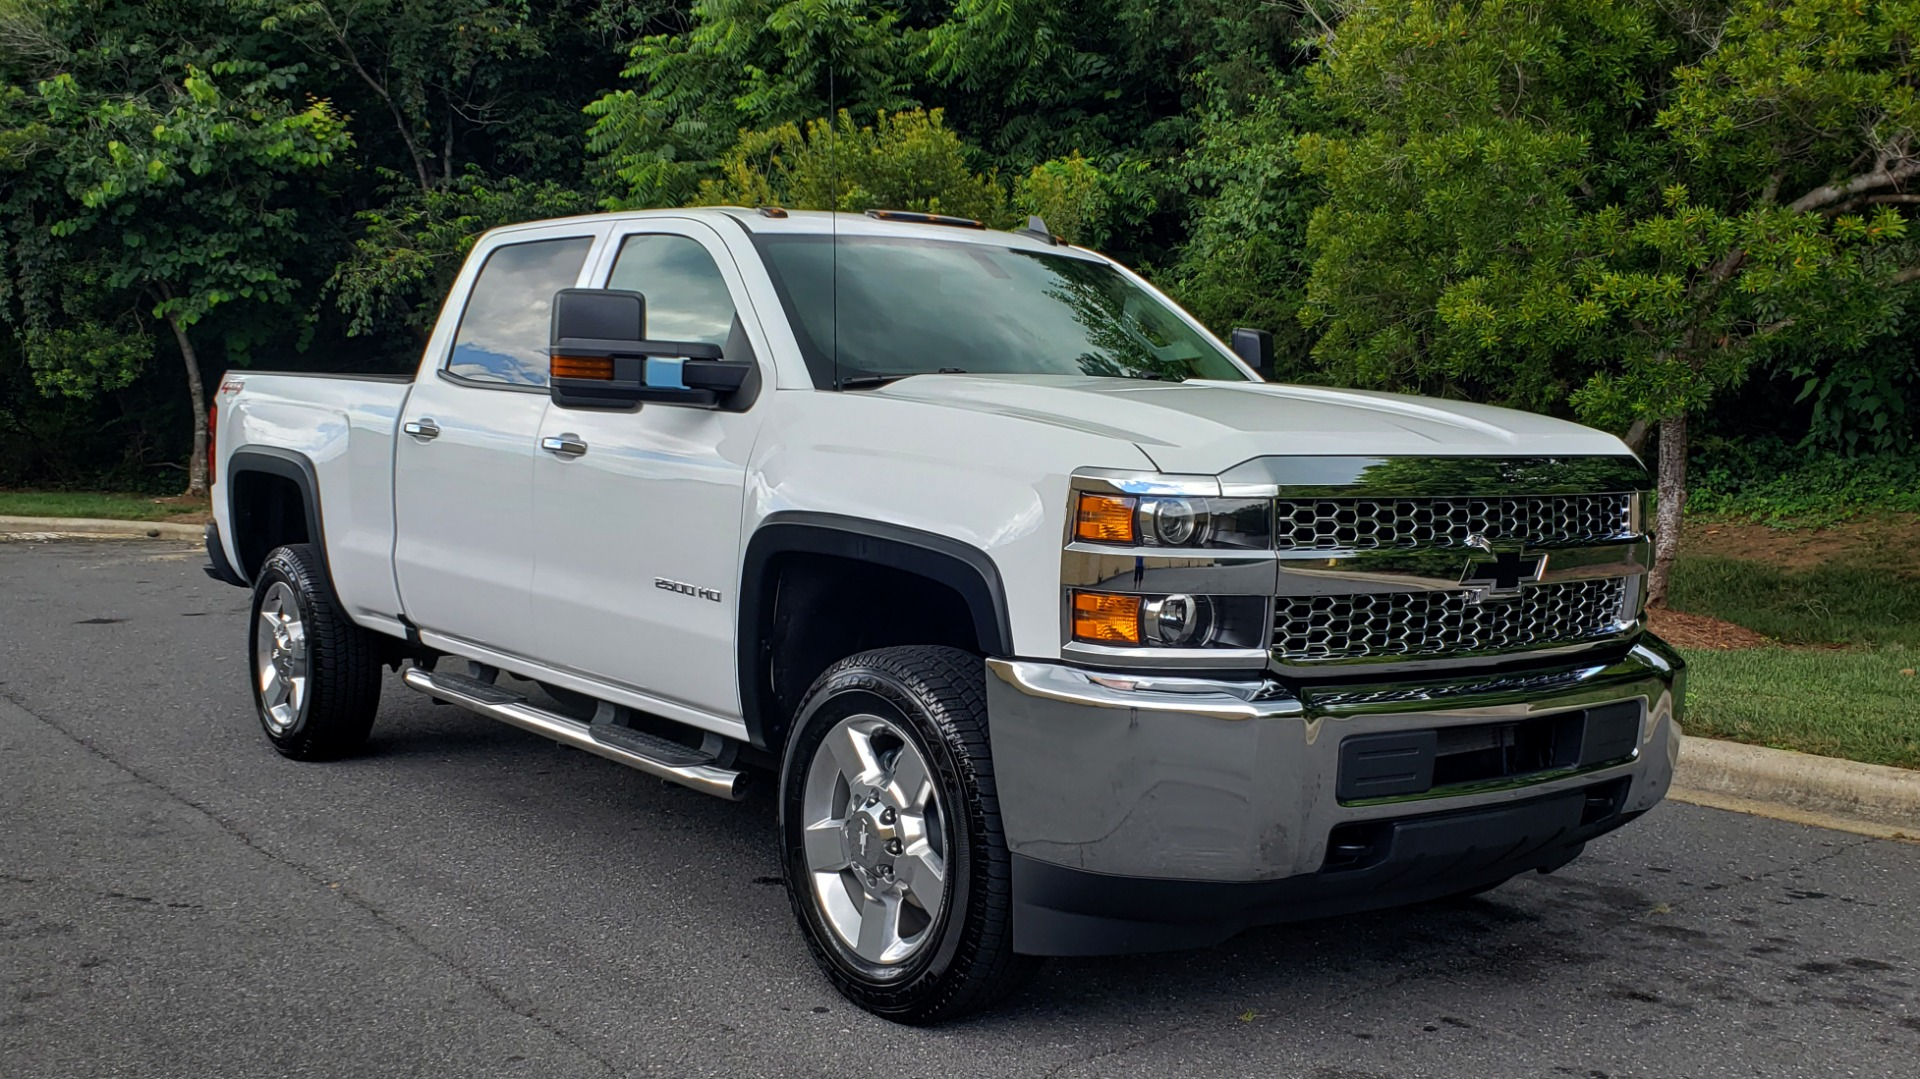 Used 2019 Chevrolet SILVERADO 2500HD WORK TRUCK / CREW CAB / 6.0L V8 / 4WD / BEDLINER for sale Sold at Formula Imports in Charlotte NC 28227 5